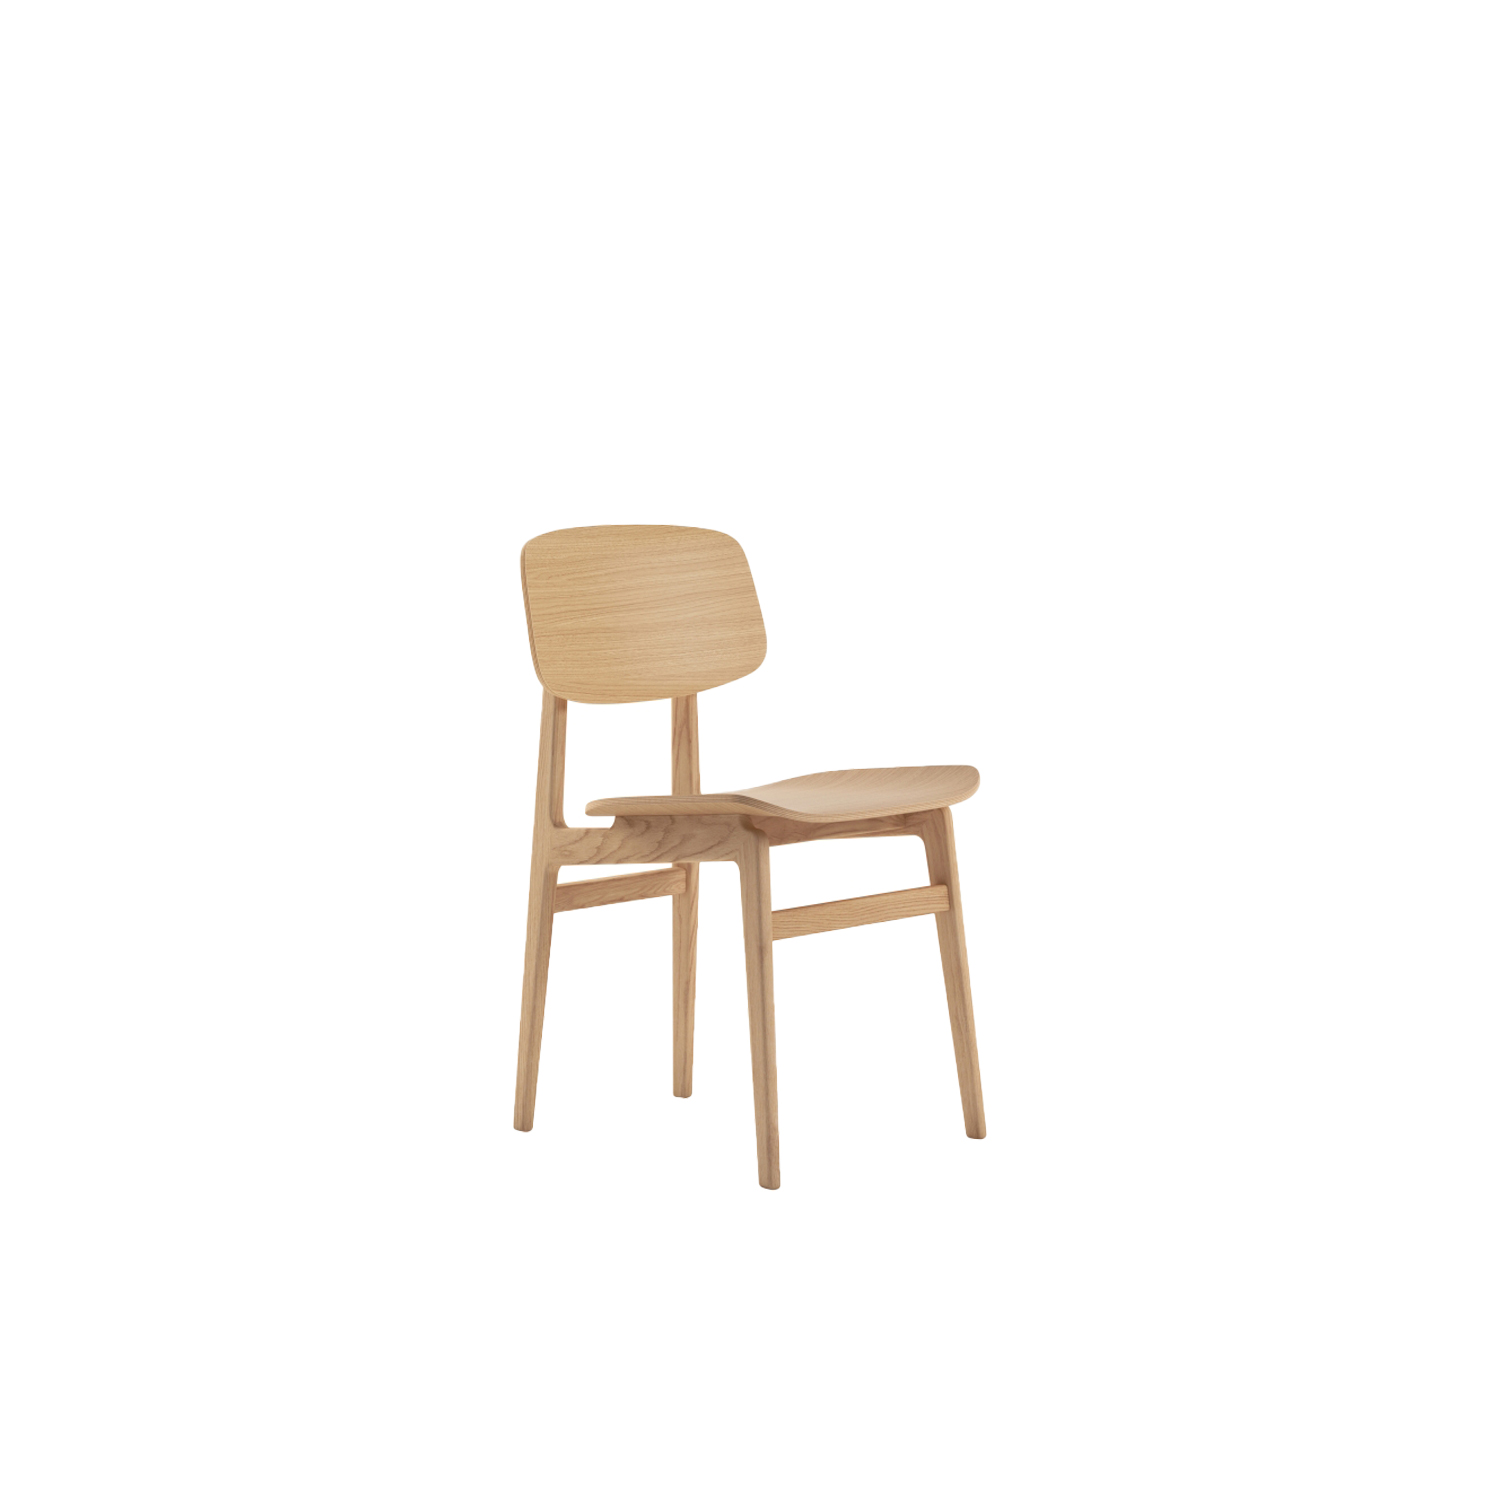 NY11 Dining Chair - Inspired by traditional Danish elementary school chairs, the NY11 Dining Chair has a frame hand-crafted from solid oak and a seat of laminated oak veneer. The Chair came to life when designers Rune Krøjgaard and Knut Bendik Humlevik went on a mission to create a modern take on the Scandinavian dining chair. Just like a school chair it had to be both comfortable and very durable. The result is a simple and honest chair with a timeless expression.